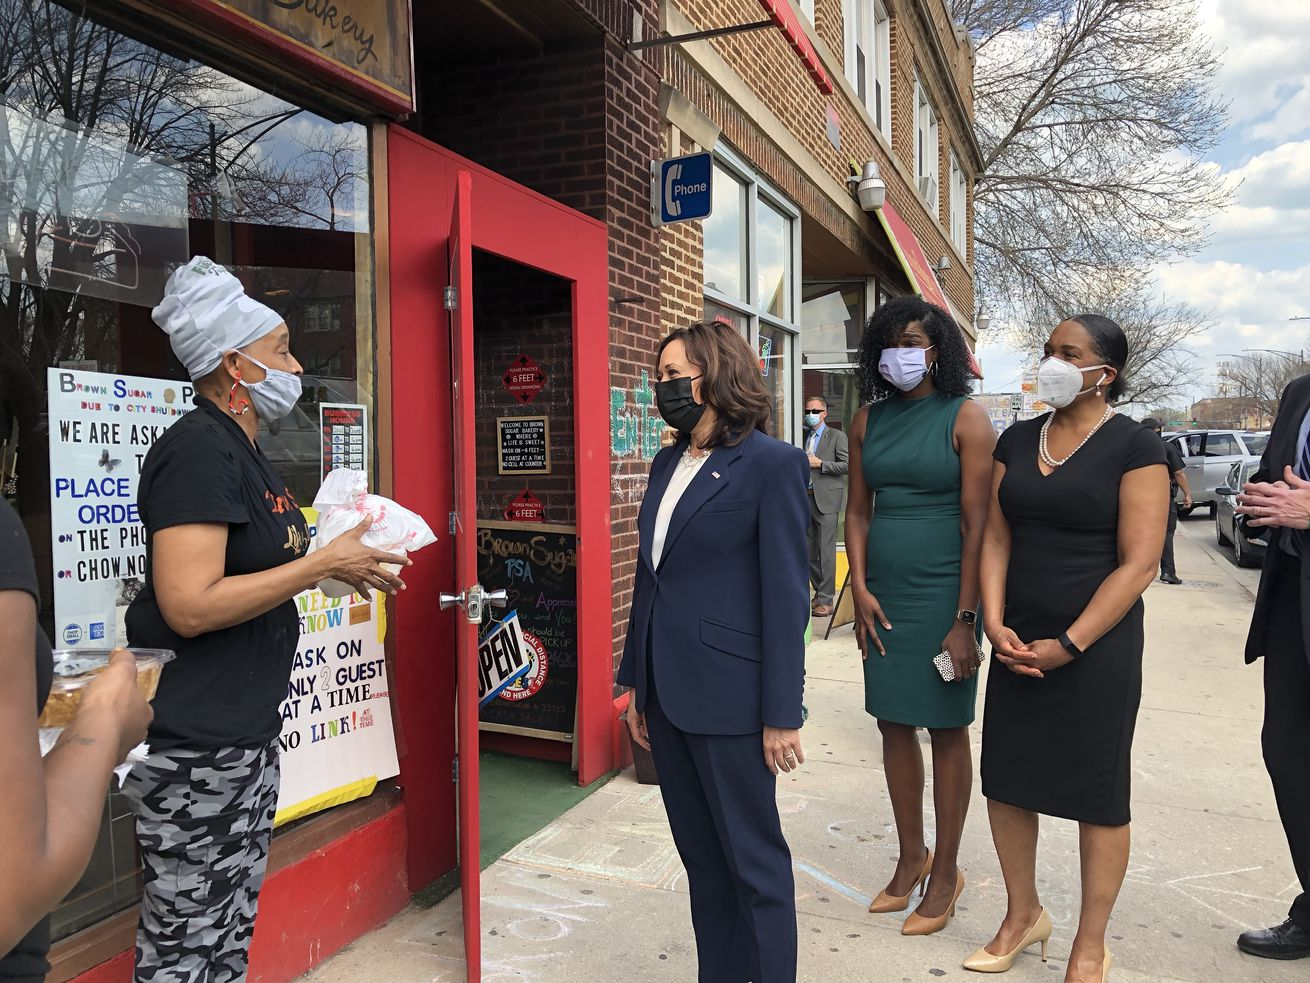 Vice President Kamala Harris speaks to an employee at Brown Sugar Bakery during her visit to Chicago on Tuesday, April 6, 2021. Cook County State's Attorney Kim Foxx and Lt. Gov. Juliana Stratton look on.